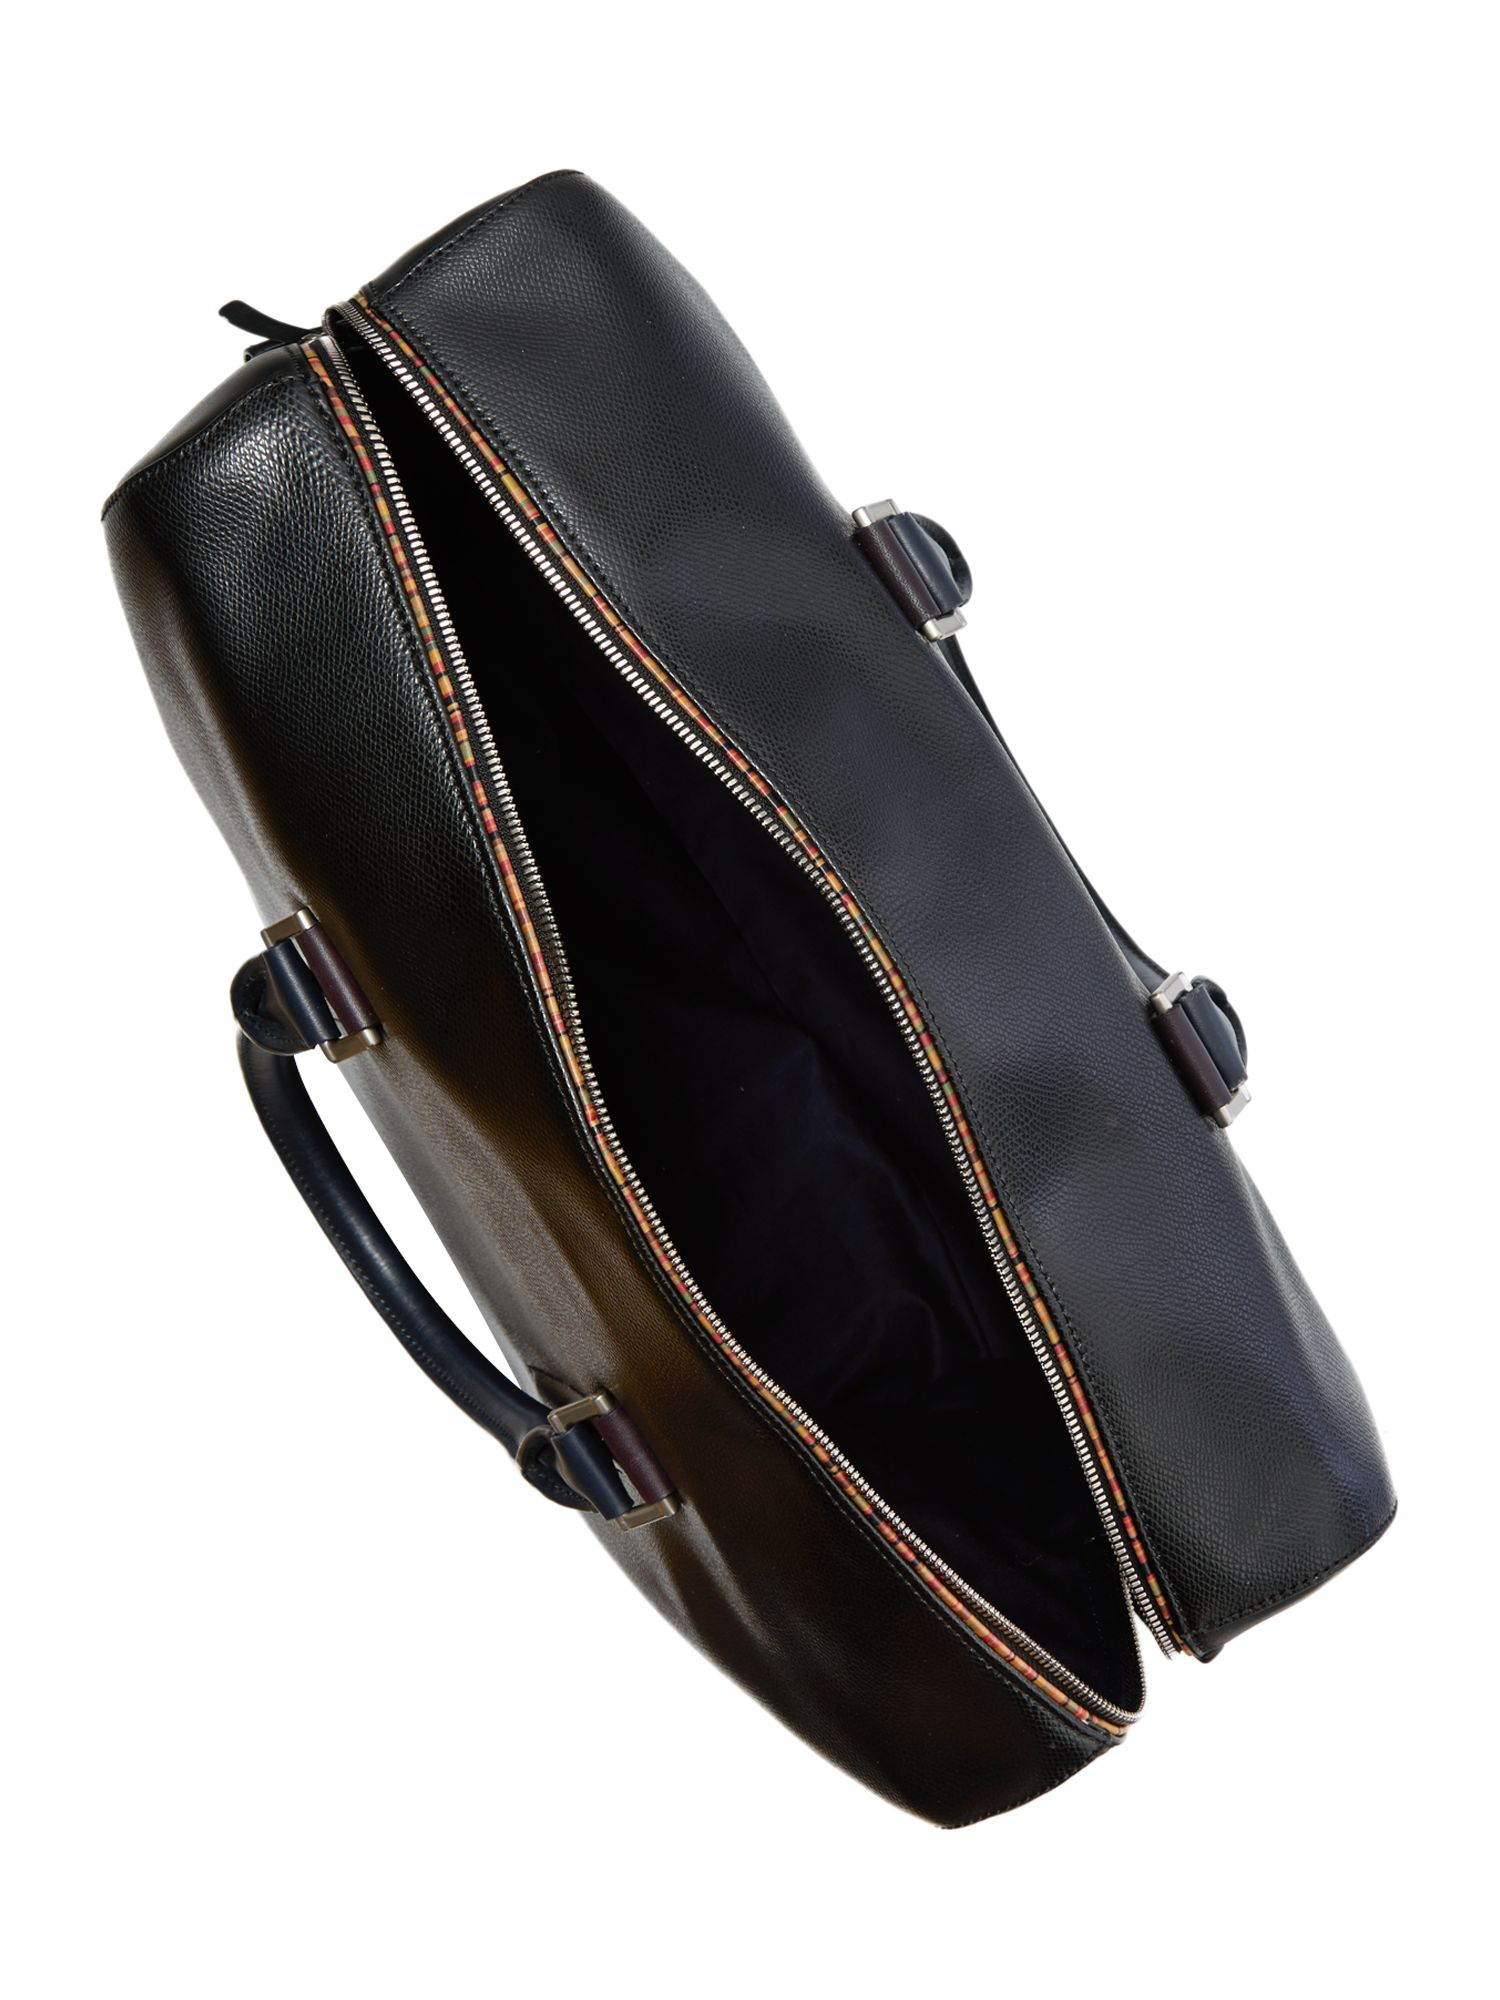 leather weekend bags for men - photo #36